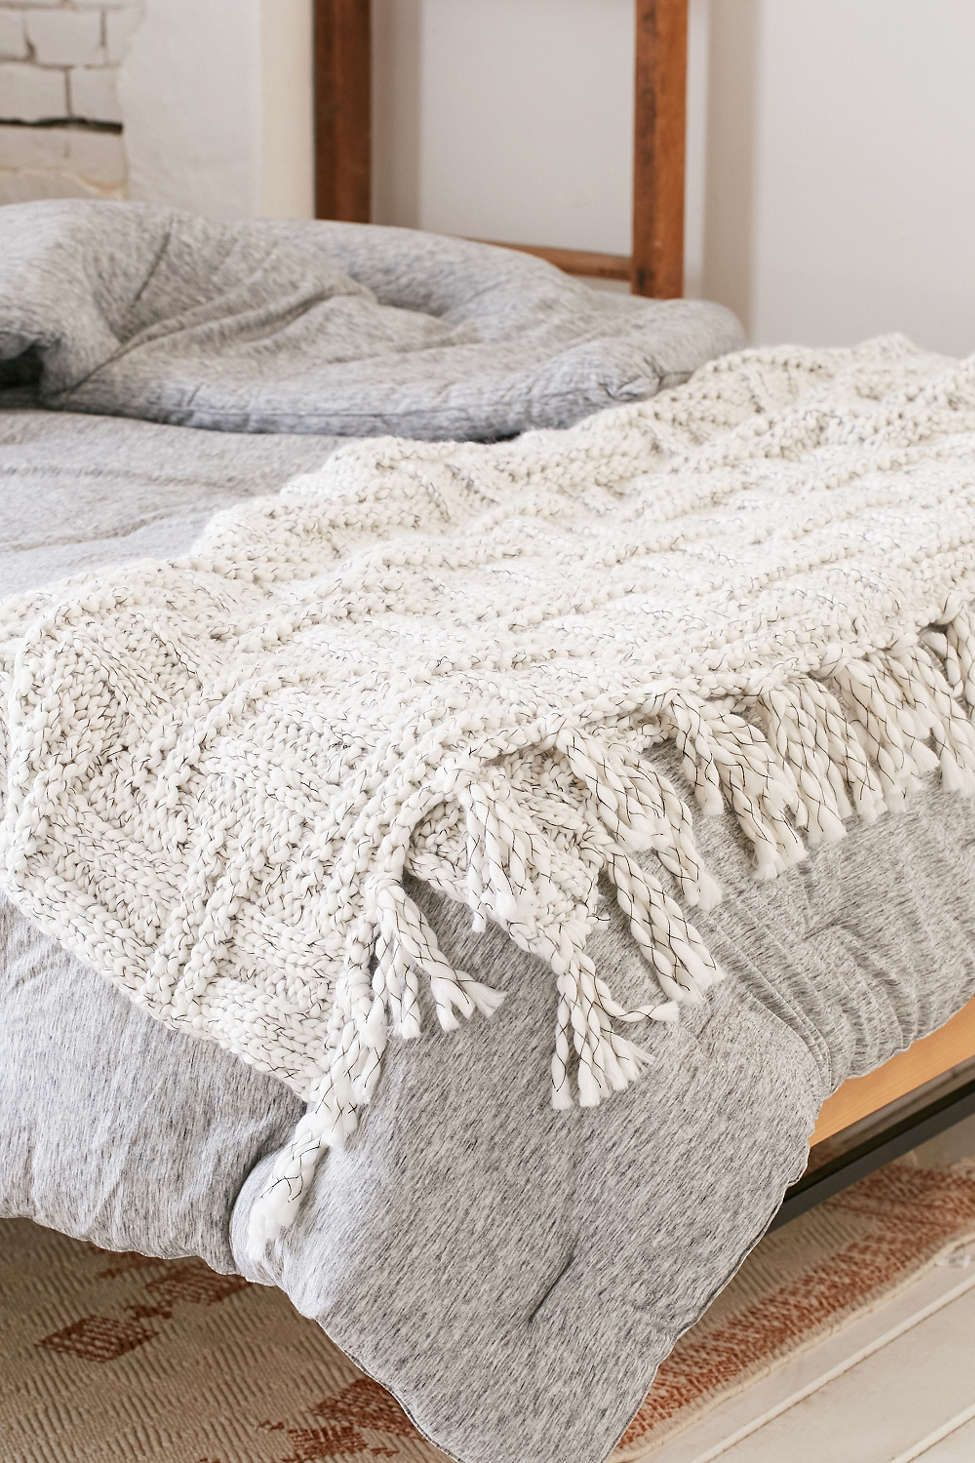 What Is A Throw Blanket Seed Stitch Knit Throw Blanket  Seed Stitch Urban Outfitters And